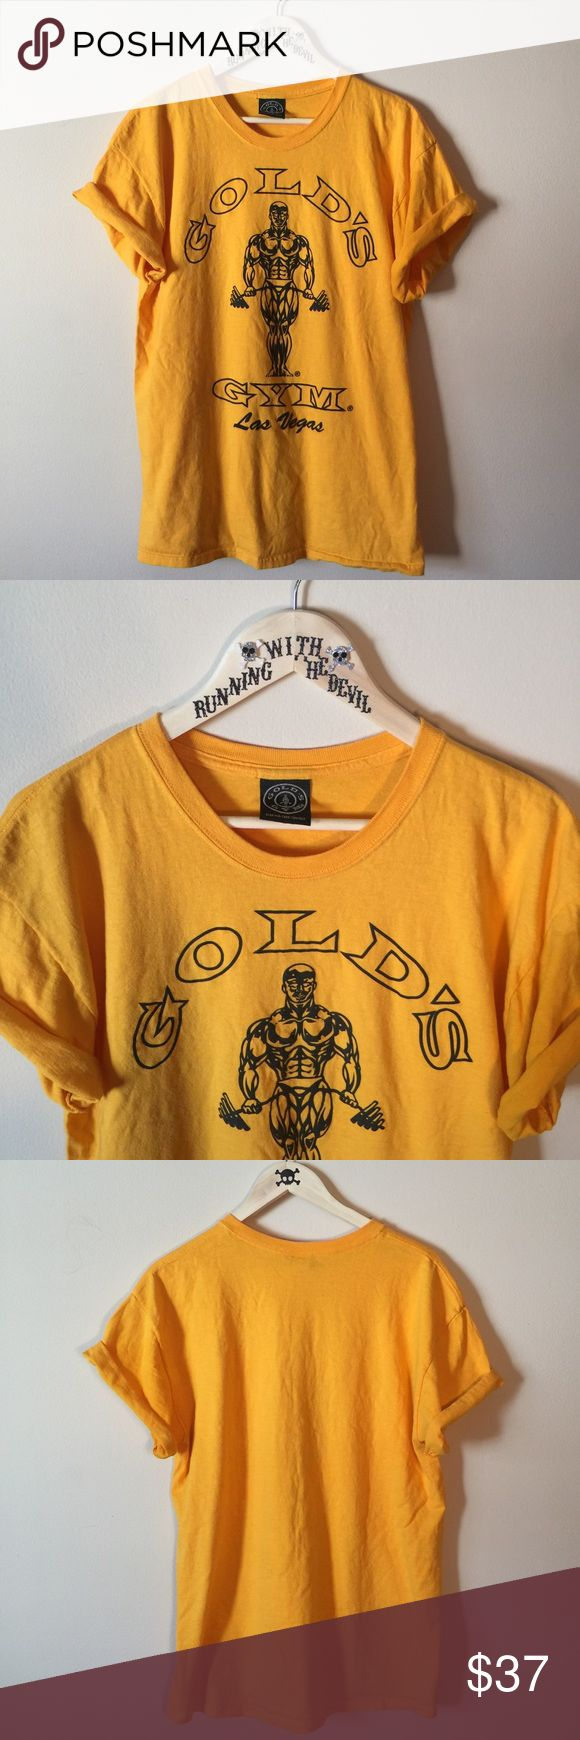 ♣️ VINTAGE || 90s • Old school Golds Gym shirt • BRIGHT YELLOW OLD SCHOOL JOE GOLD'S GYM OF LAS VEGAS MEMBERSHIP T-SHIRT   • Great shape. No stains, holes, fading or cracking.  • thick cotton. • SIZE: MEN'S LARGE  #vintage #vtg #retro #yellow #gym #goldsgym #gym #euc #graphic #tshirt #fitness #workout #graphic #lasvegas Vintage Shirts Tees - Short Sleeve